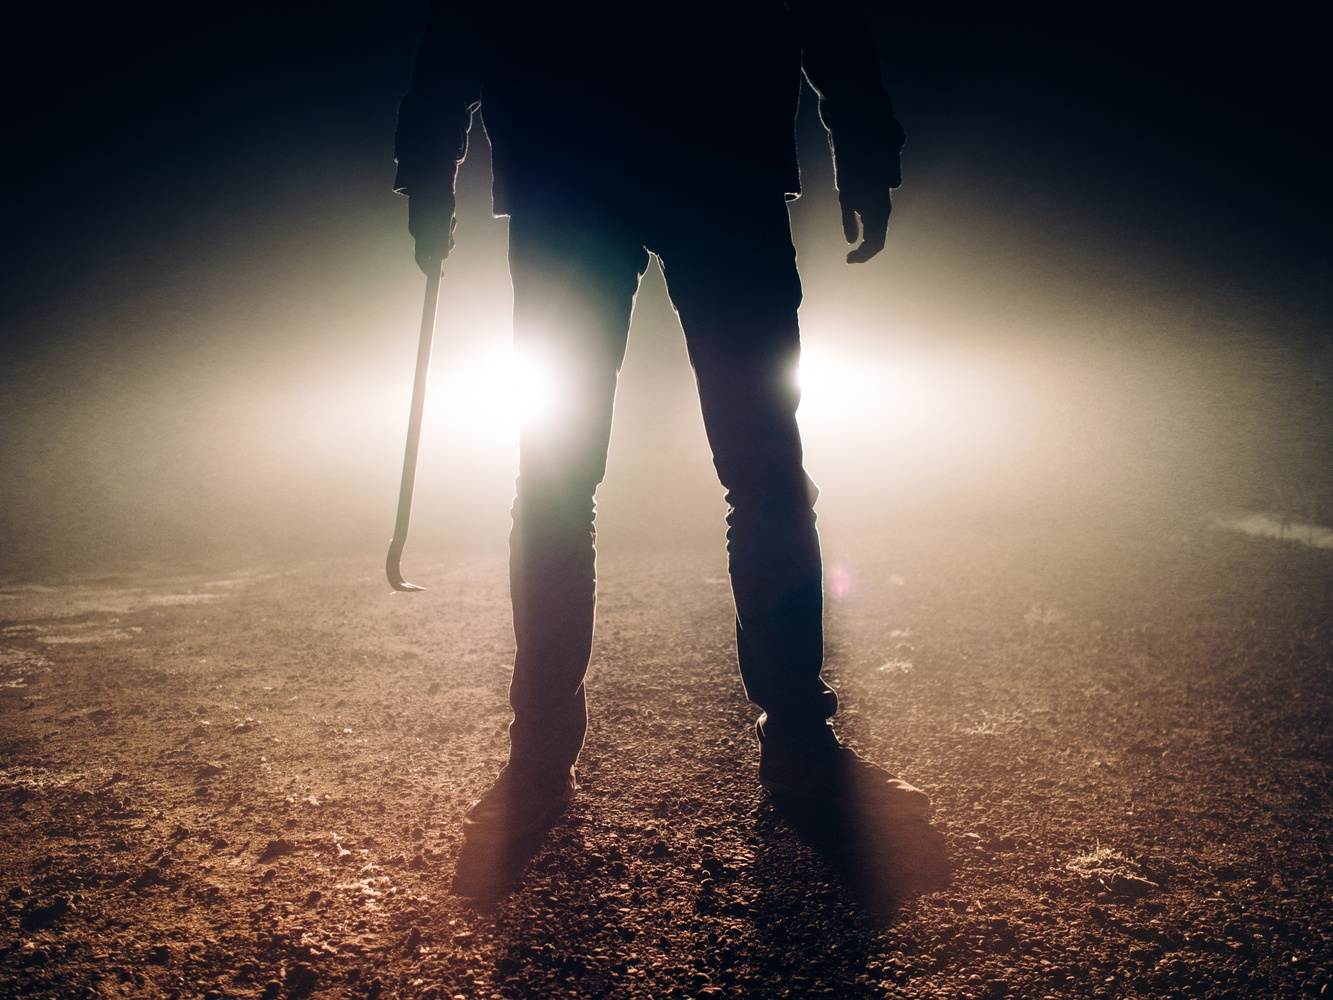 a photo of a man backlit by bright truck headlights holding a crowbar